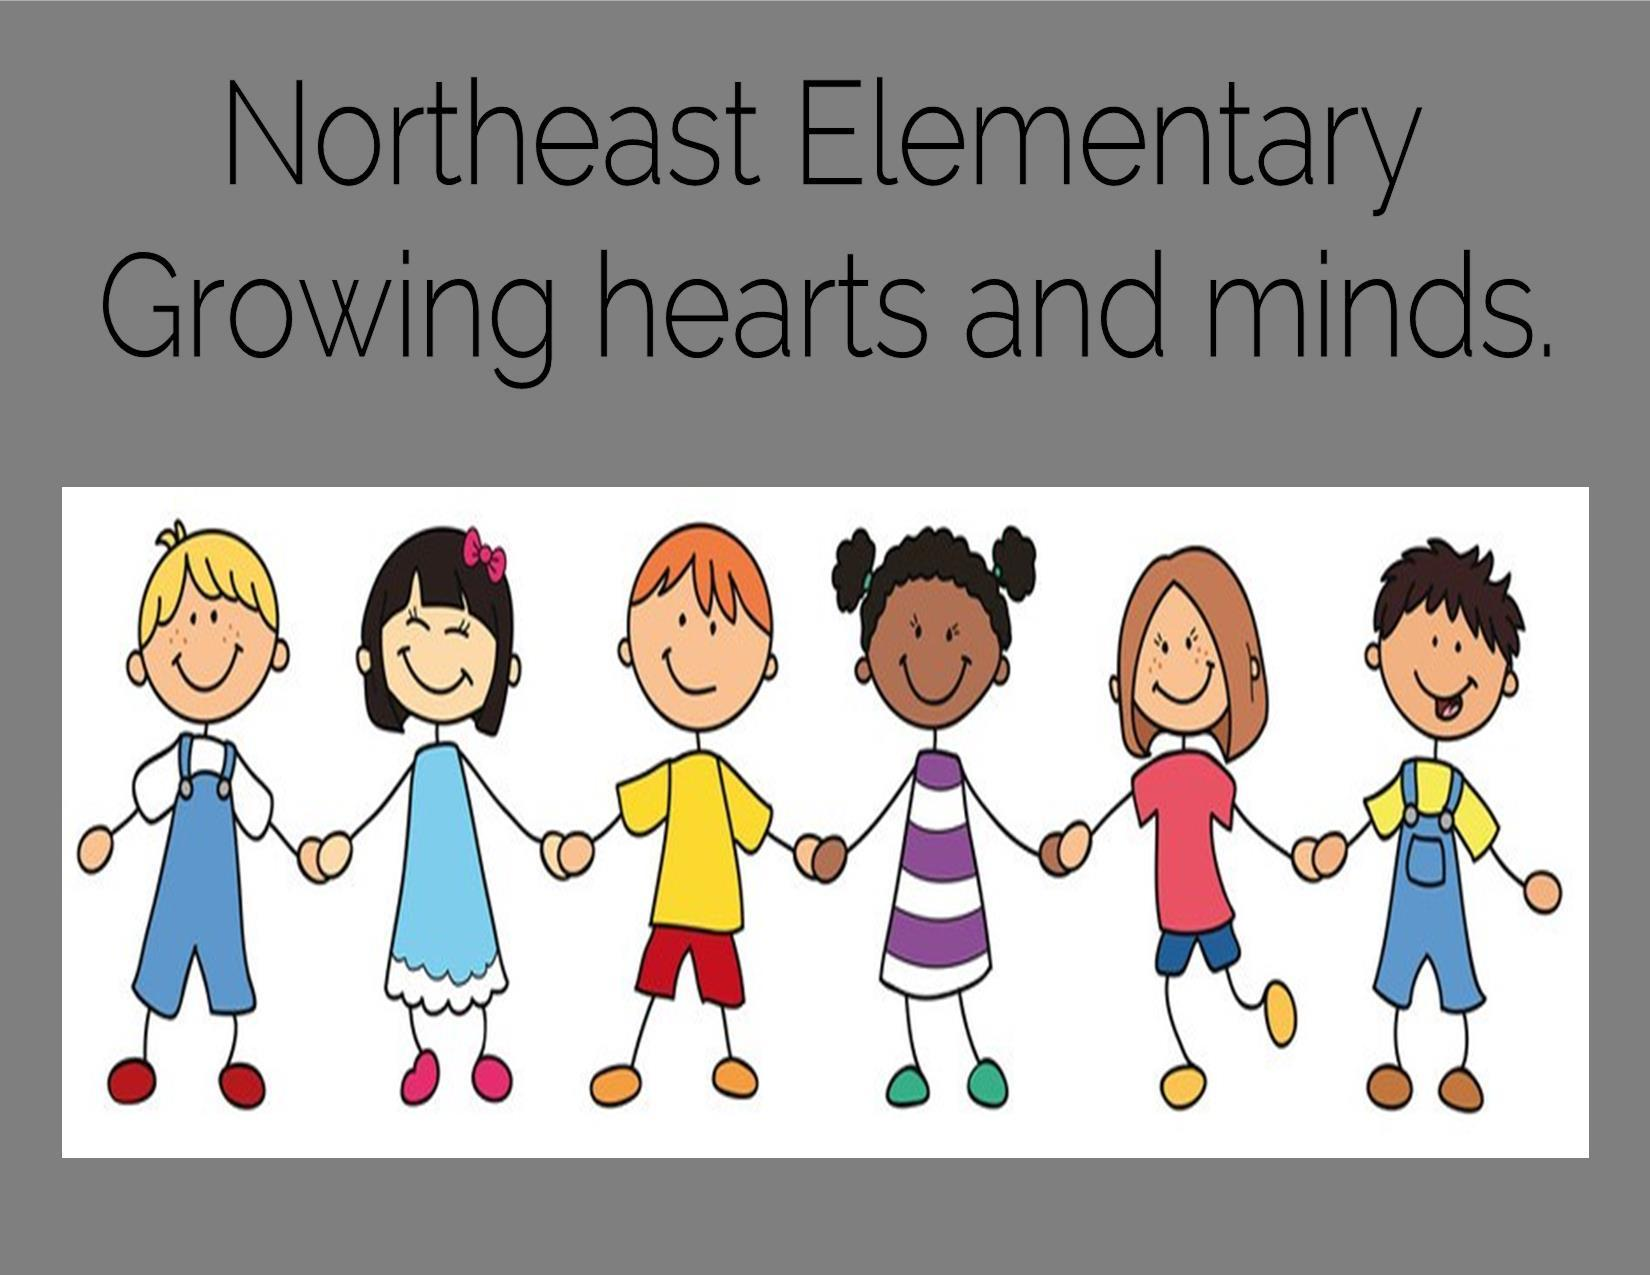 Welcome to Northeast Elementary Image